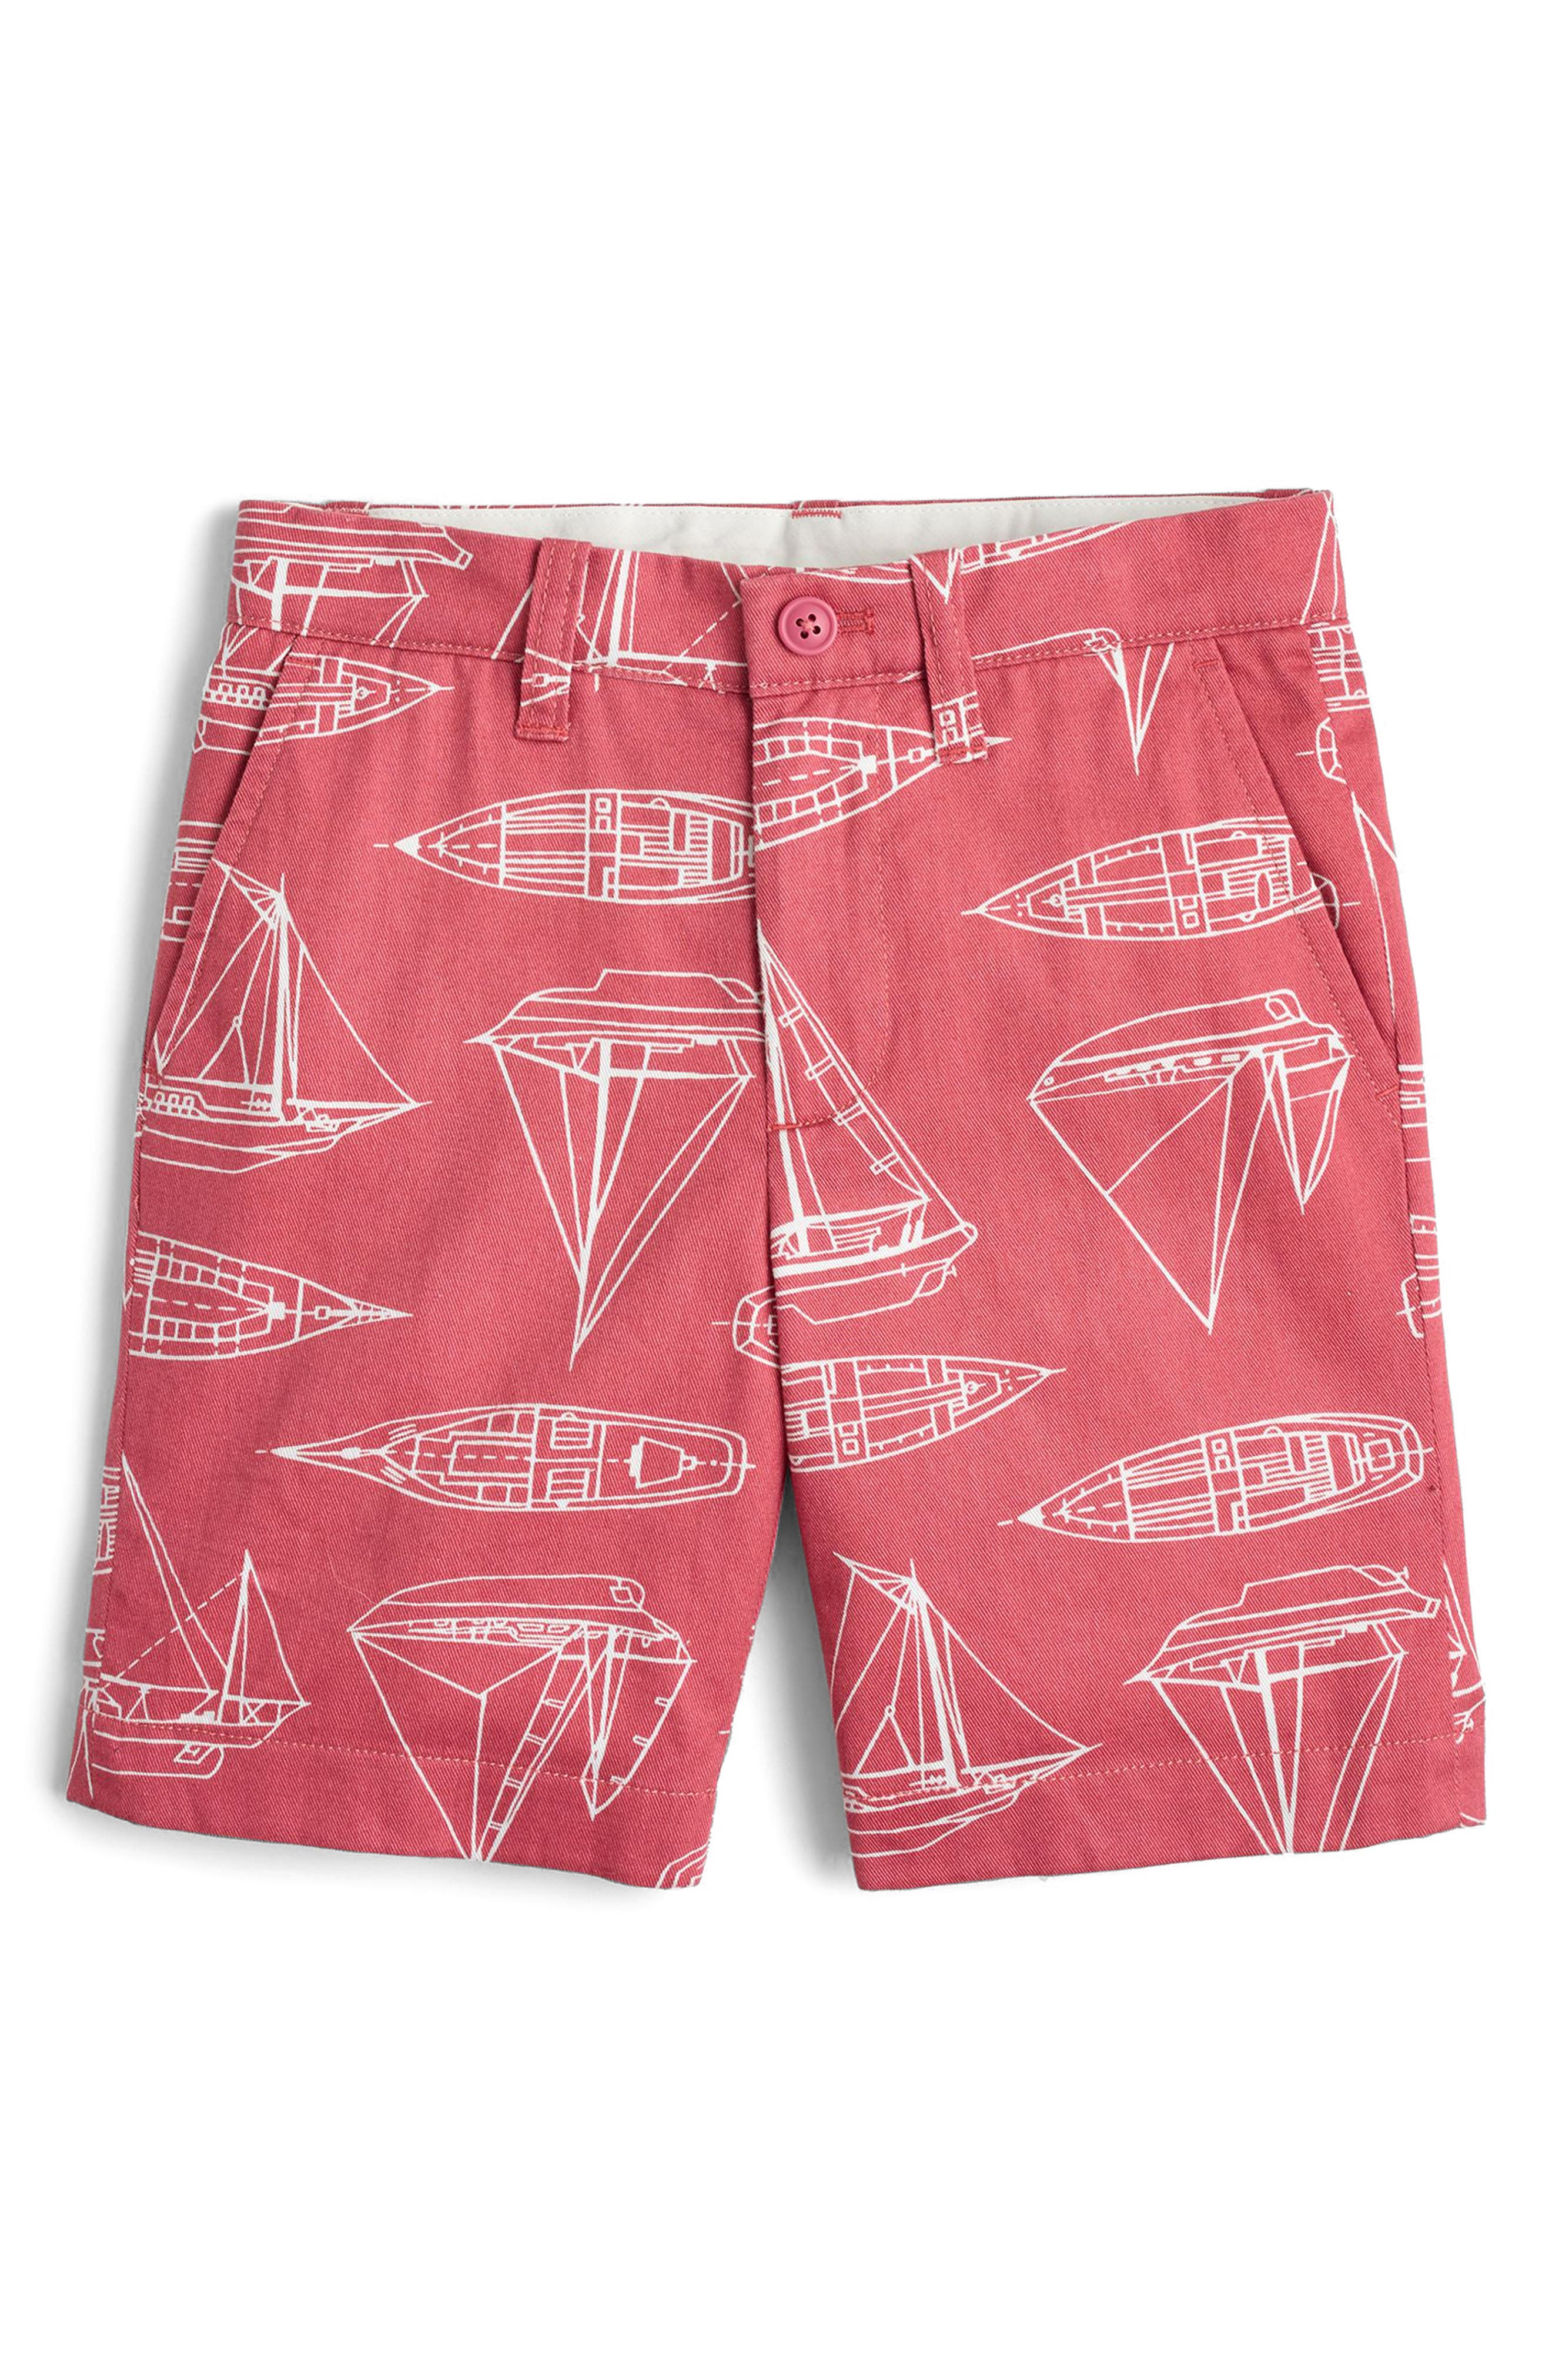 Stanton Boat Print Shorts,                         Main,                         color, Red Boats